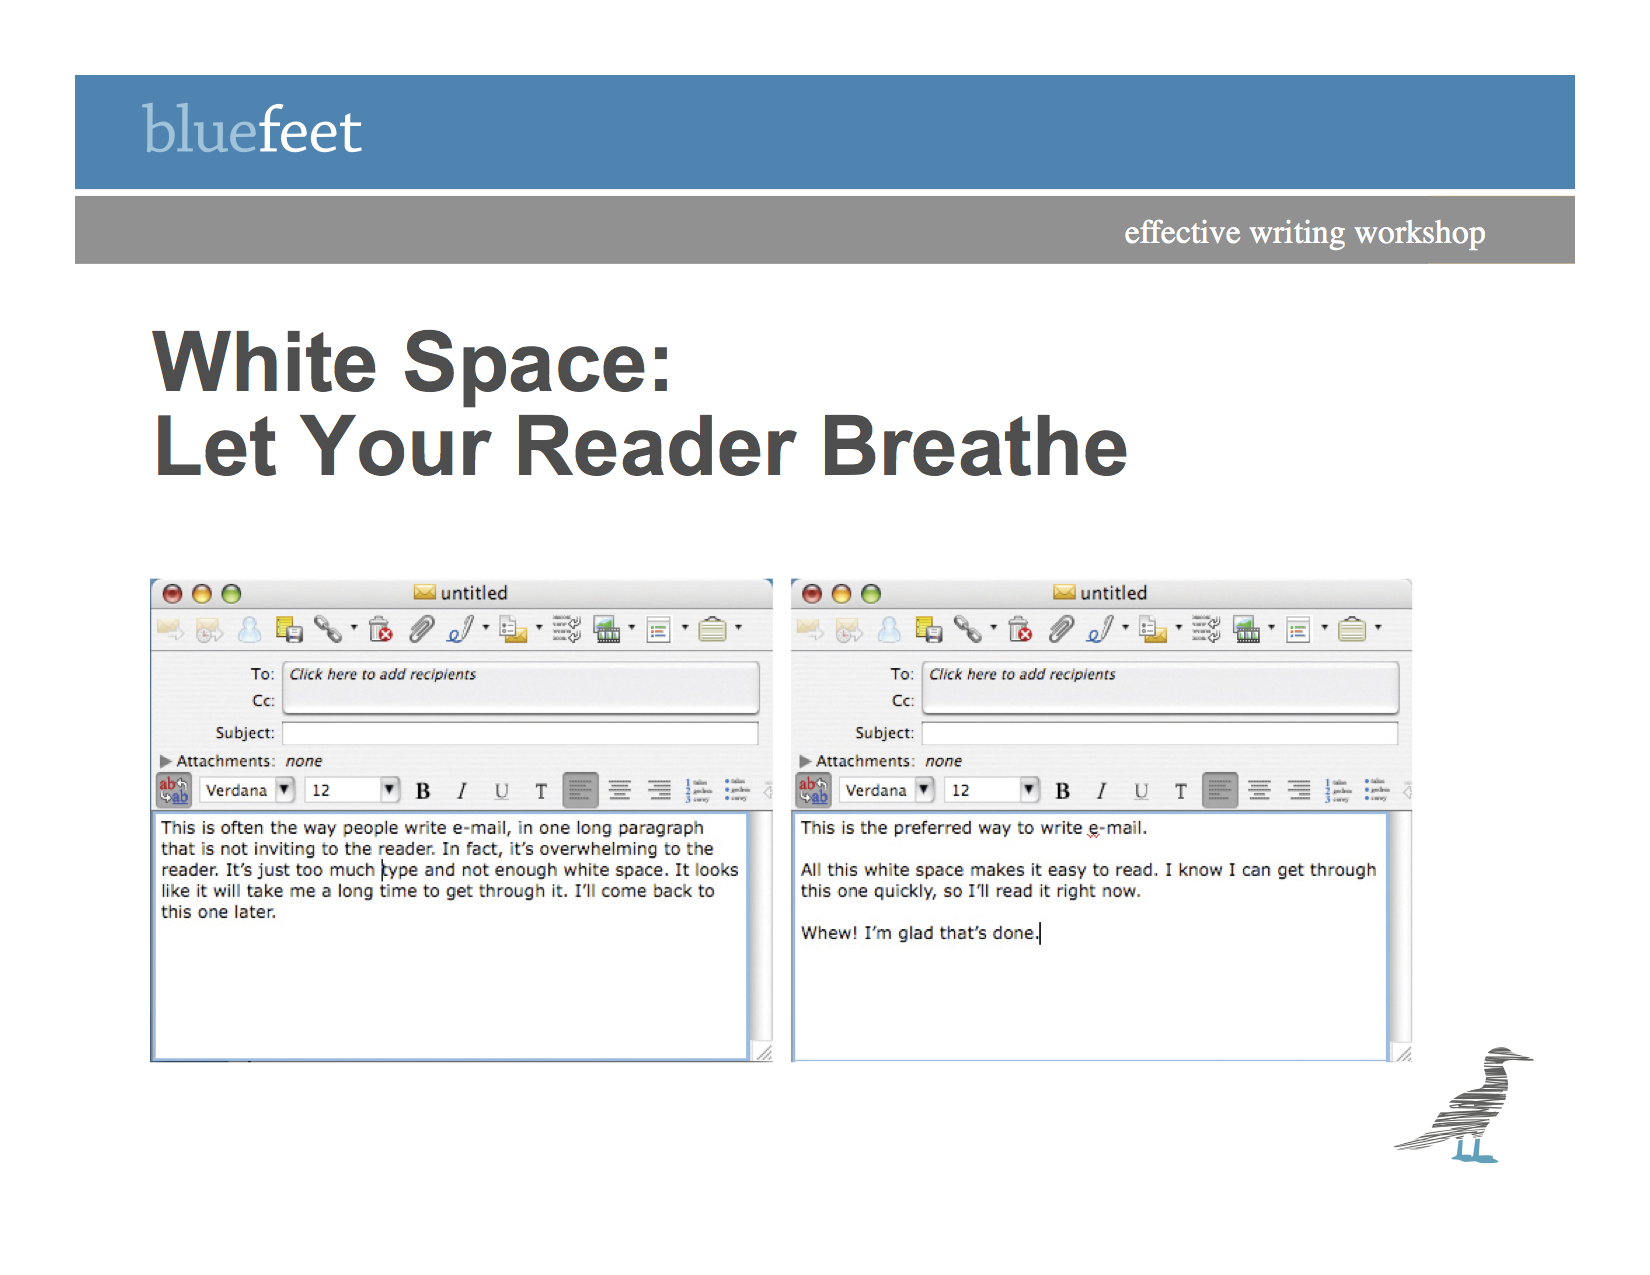 White Space bluefeet blog post by Lilli Cloud